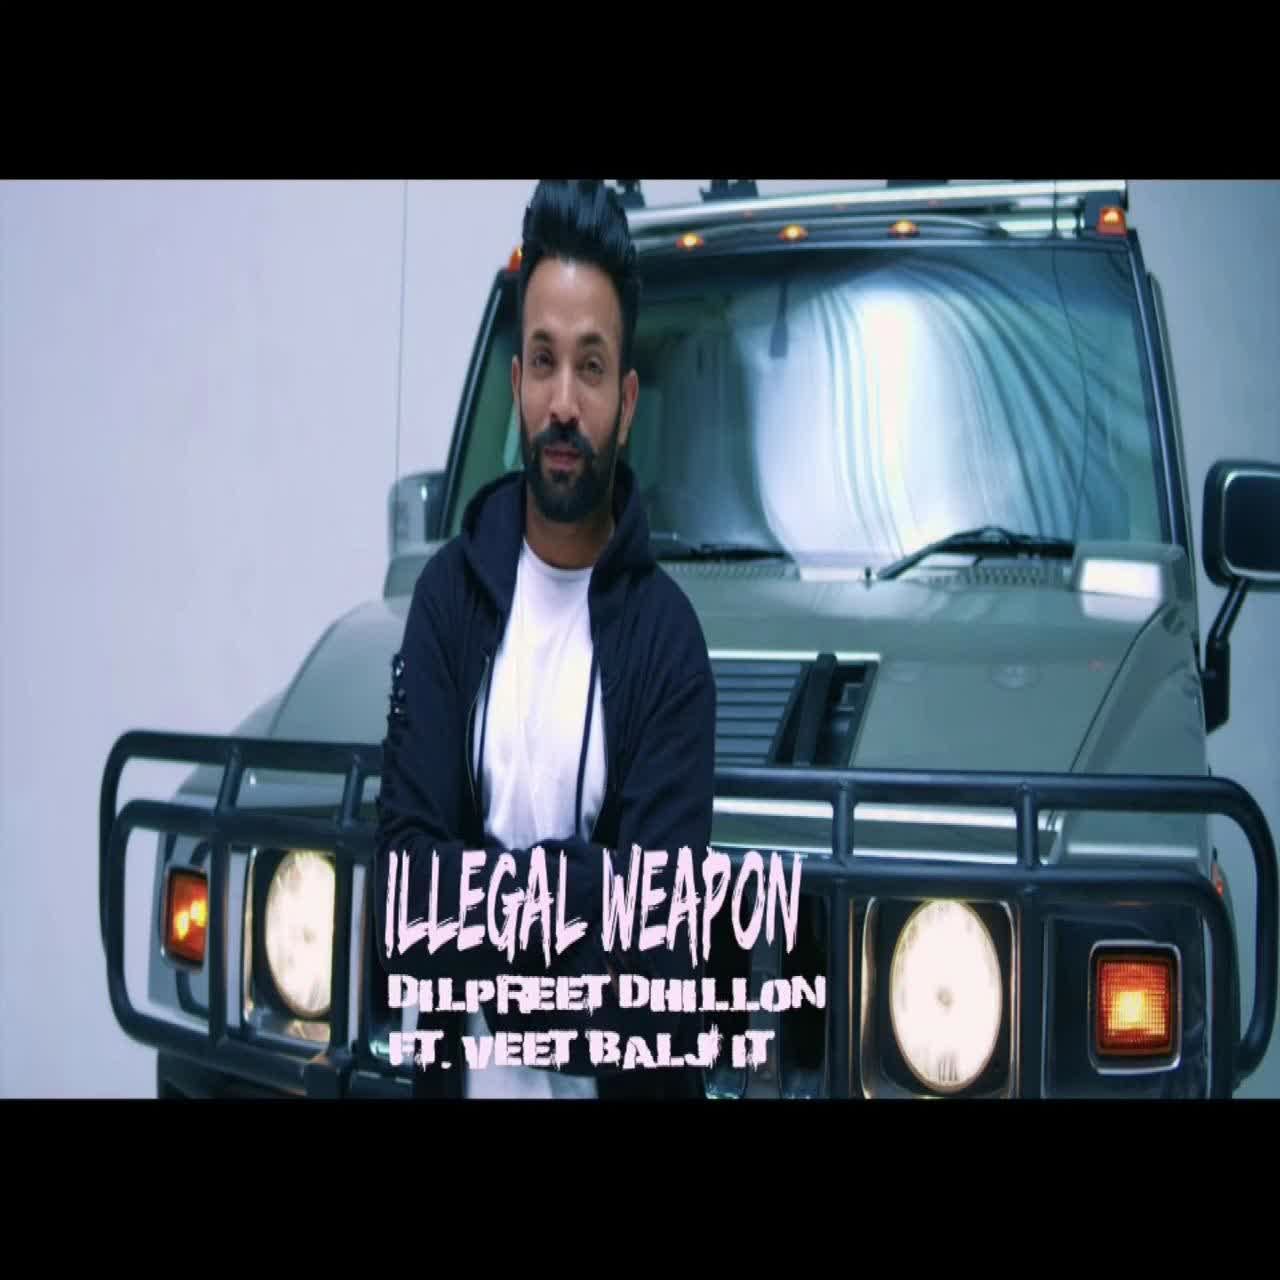 Illegal Weapon Dilpreet Dhillon